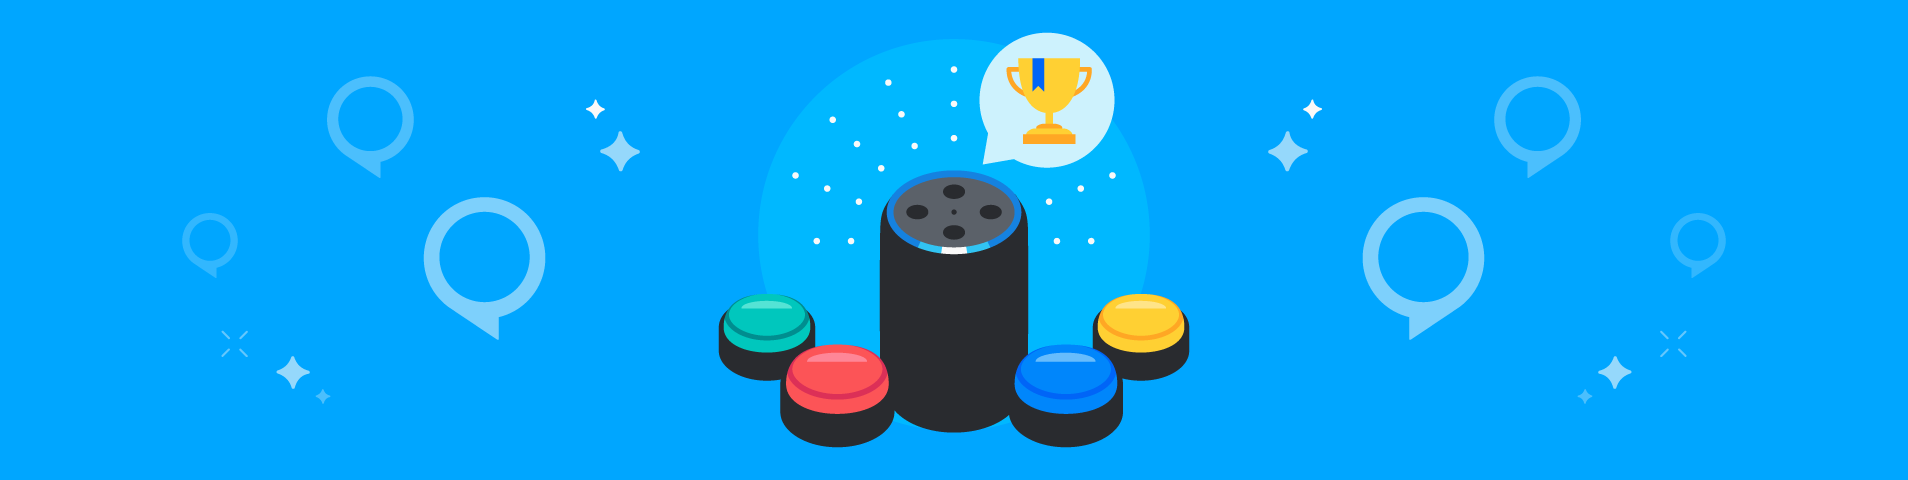 Echo Buttons Game Skills Contest